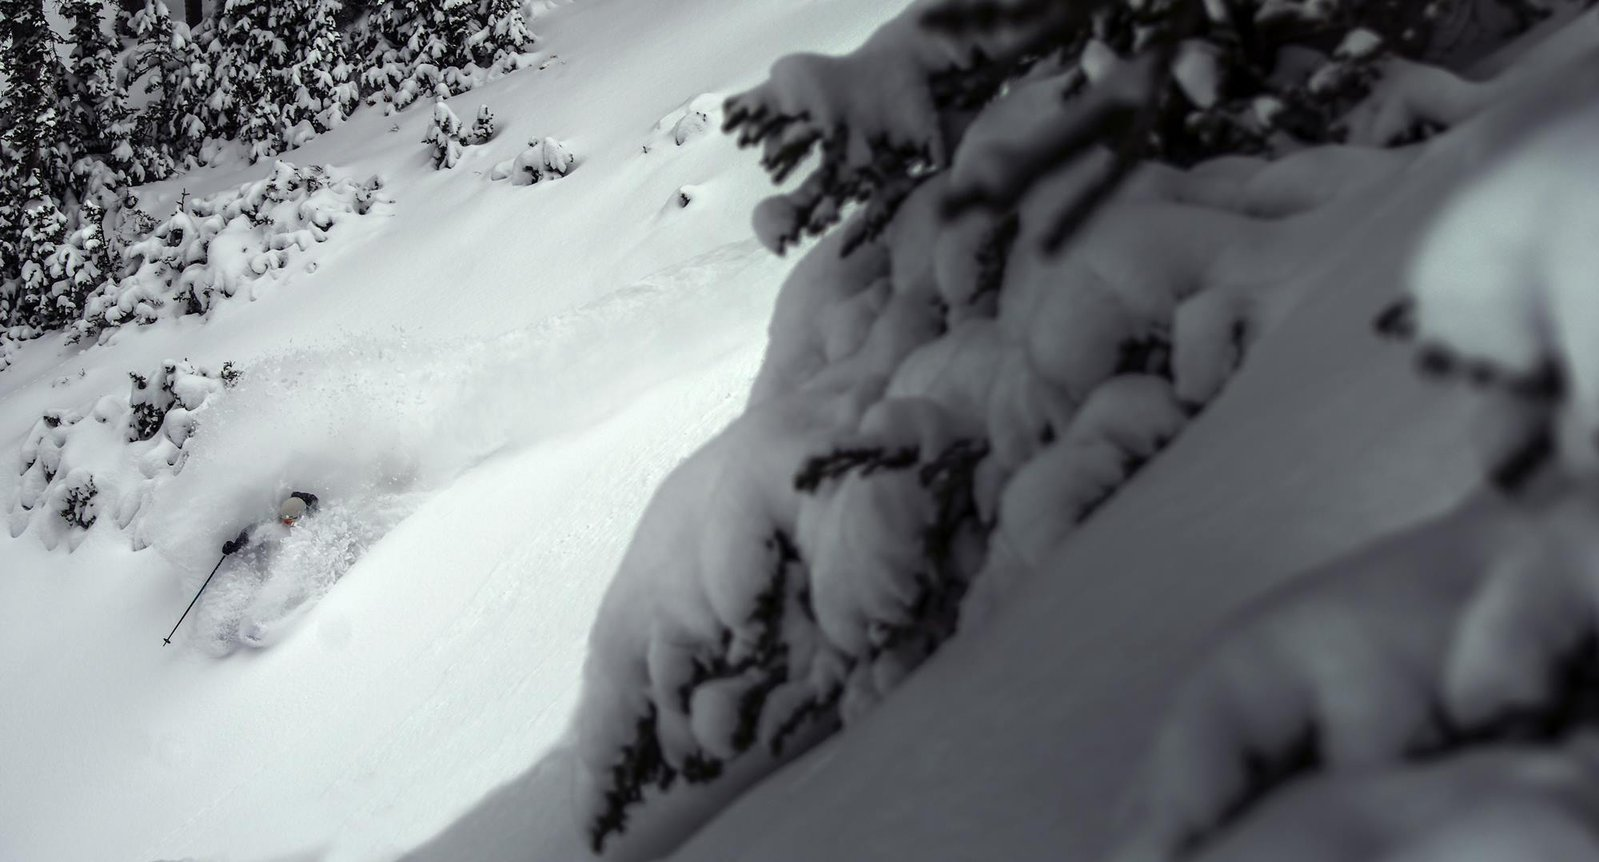 Bo getting pitted at Alta 10/30